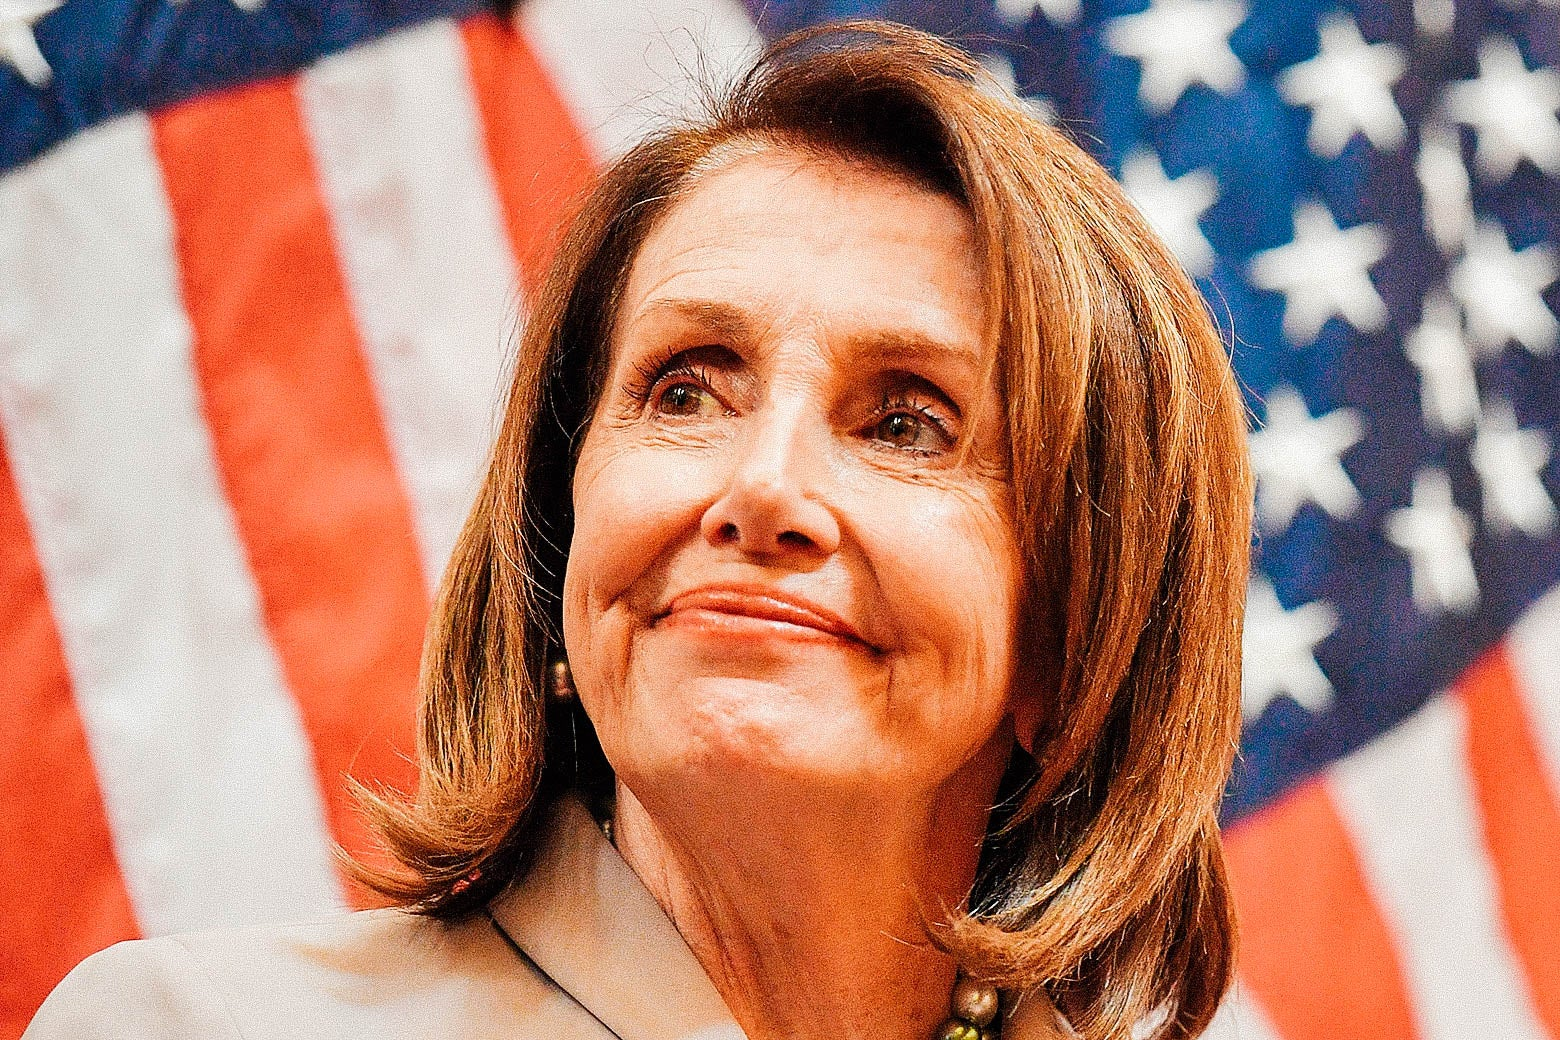 Nancy Pelosi in front of some American flags.